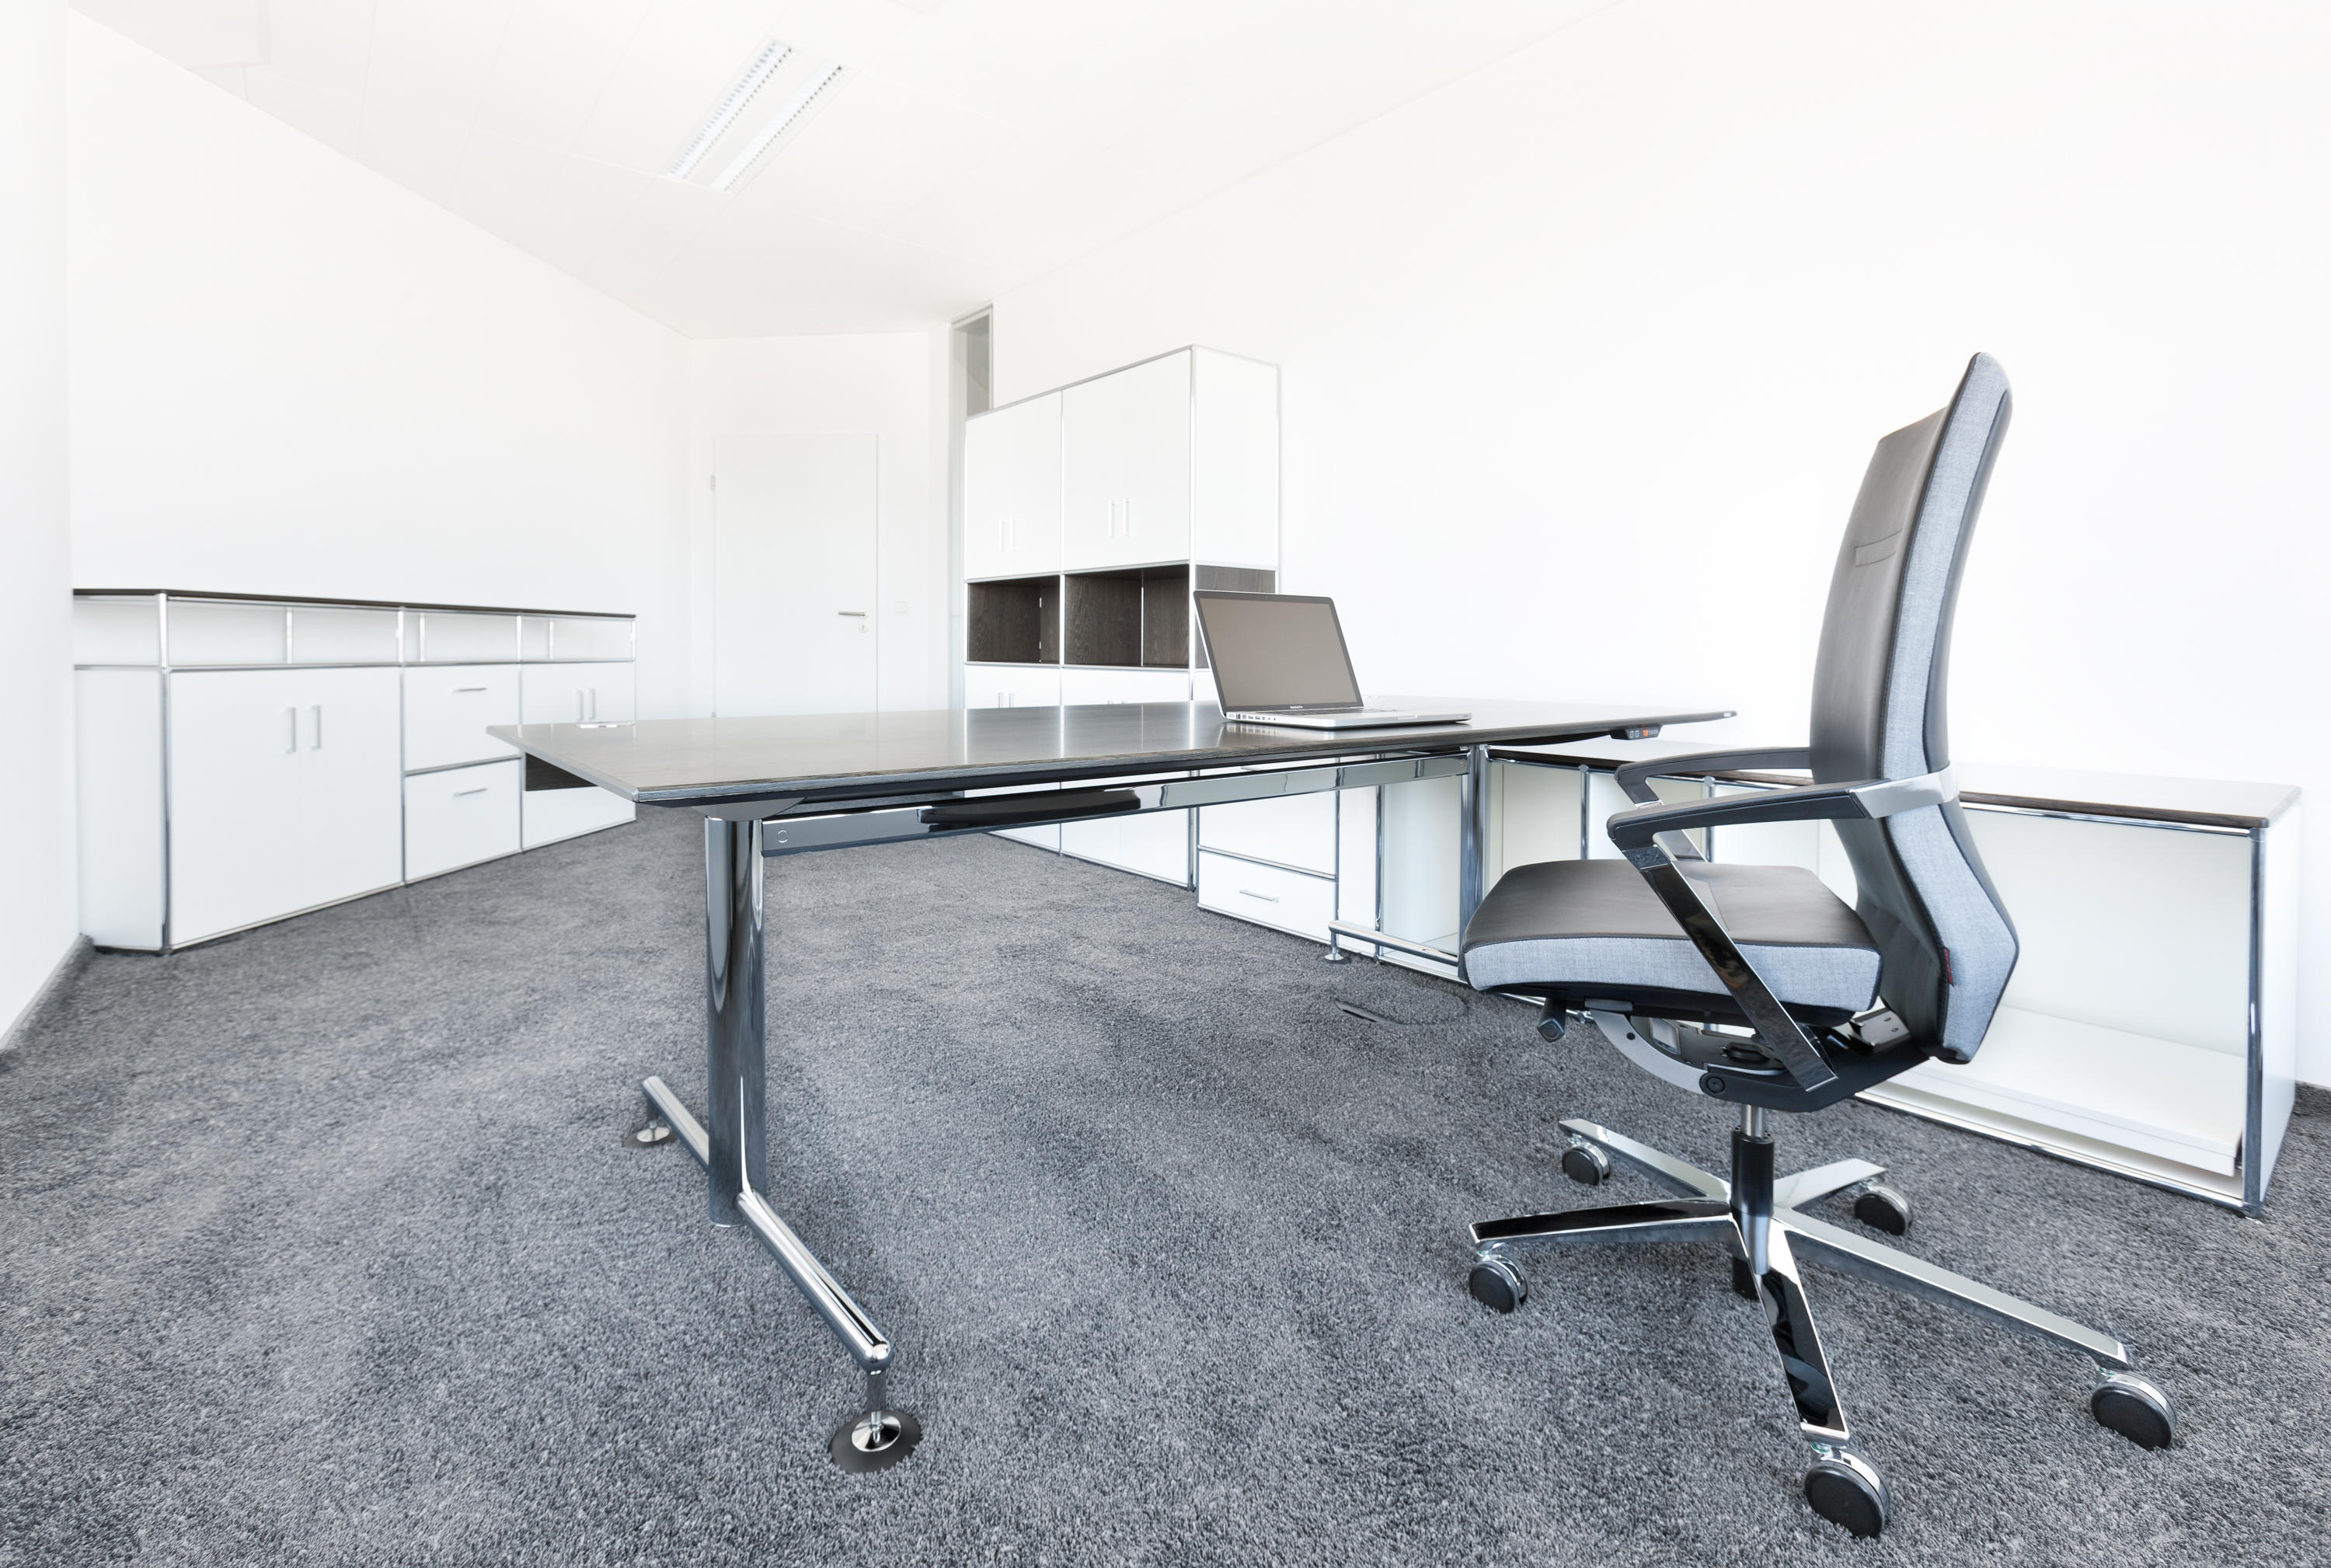 Bosse Design Bosse M1 Desk Individual Desks From Bosse Design